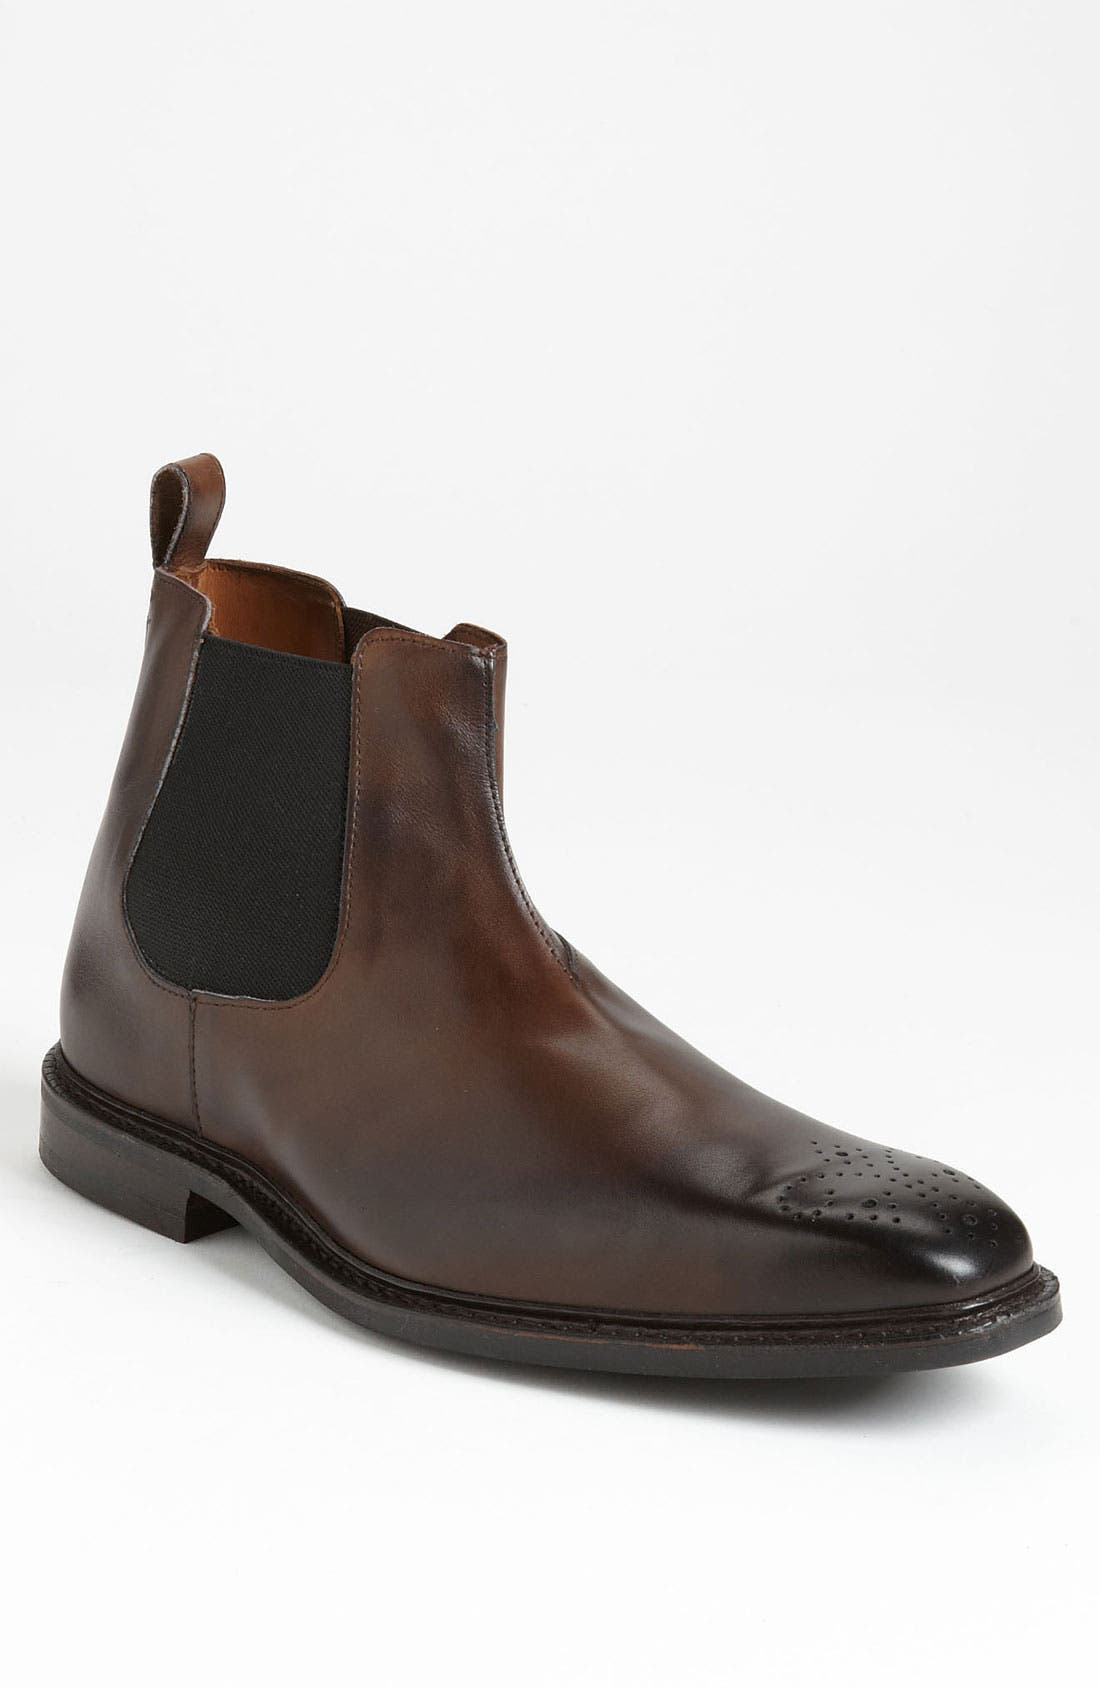 Main Image - Allen Edmonds 'Haight' Chelsea Boot (Online Only) (Men)